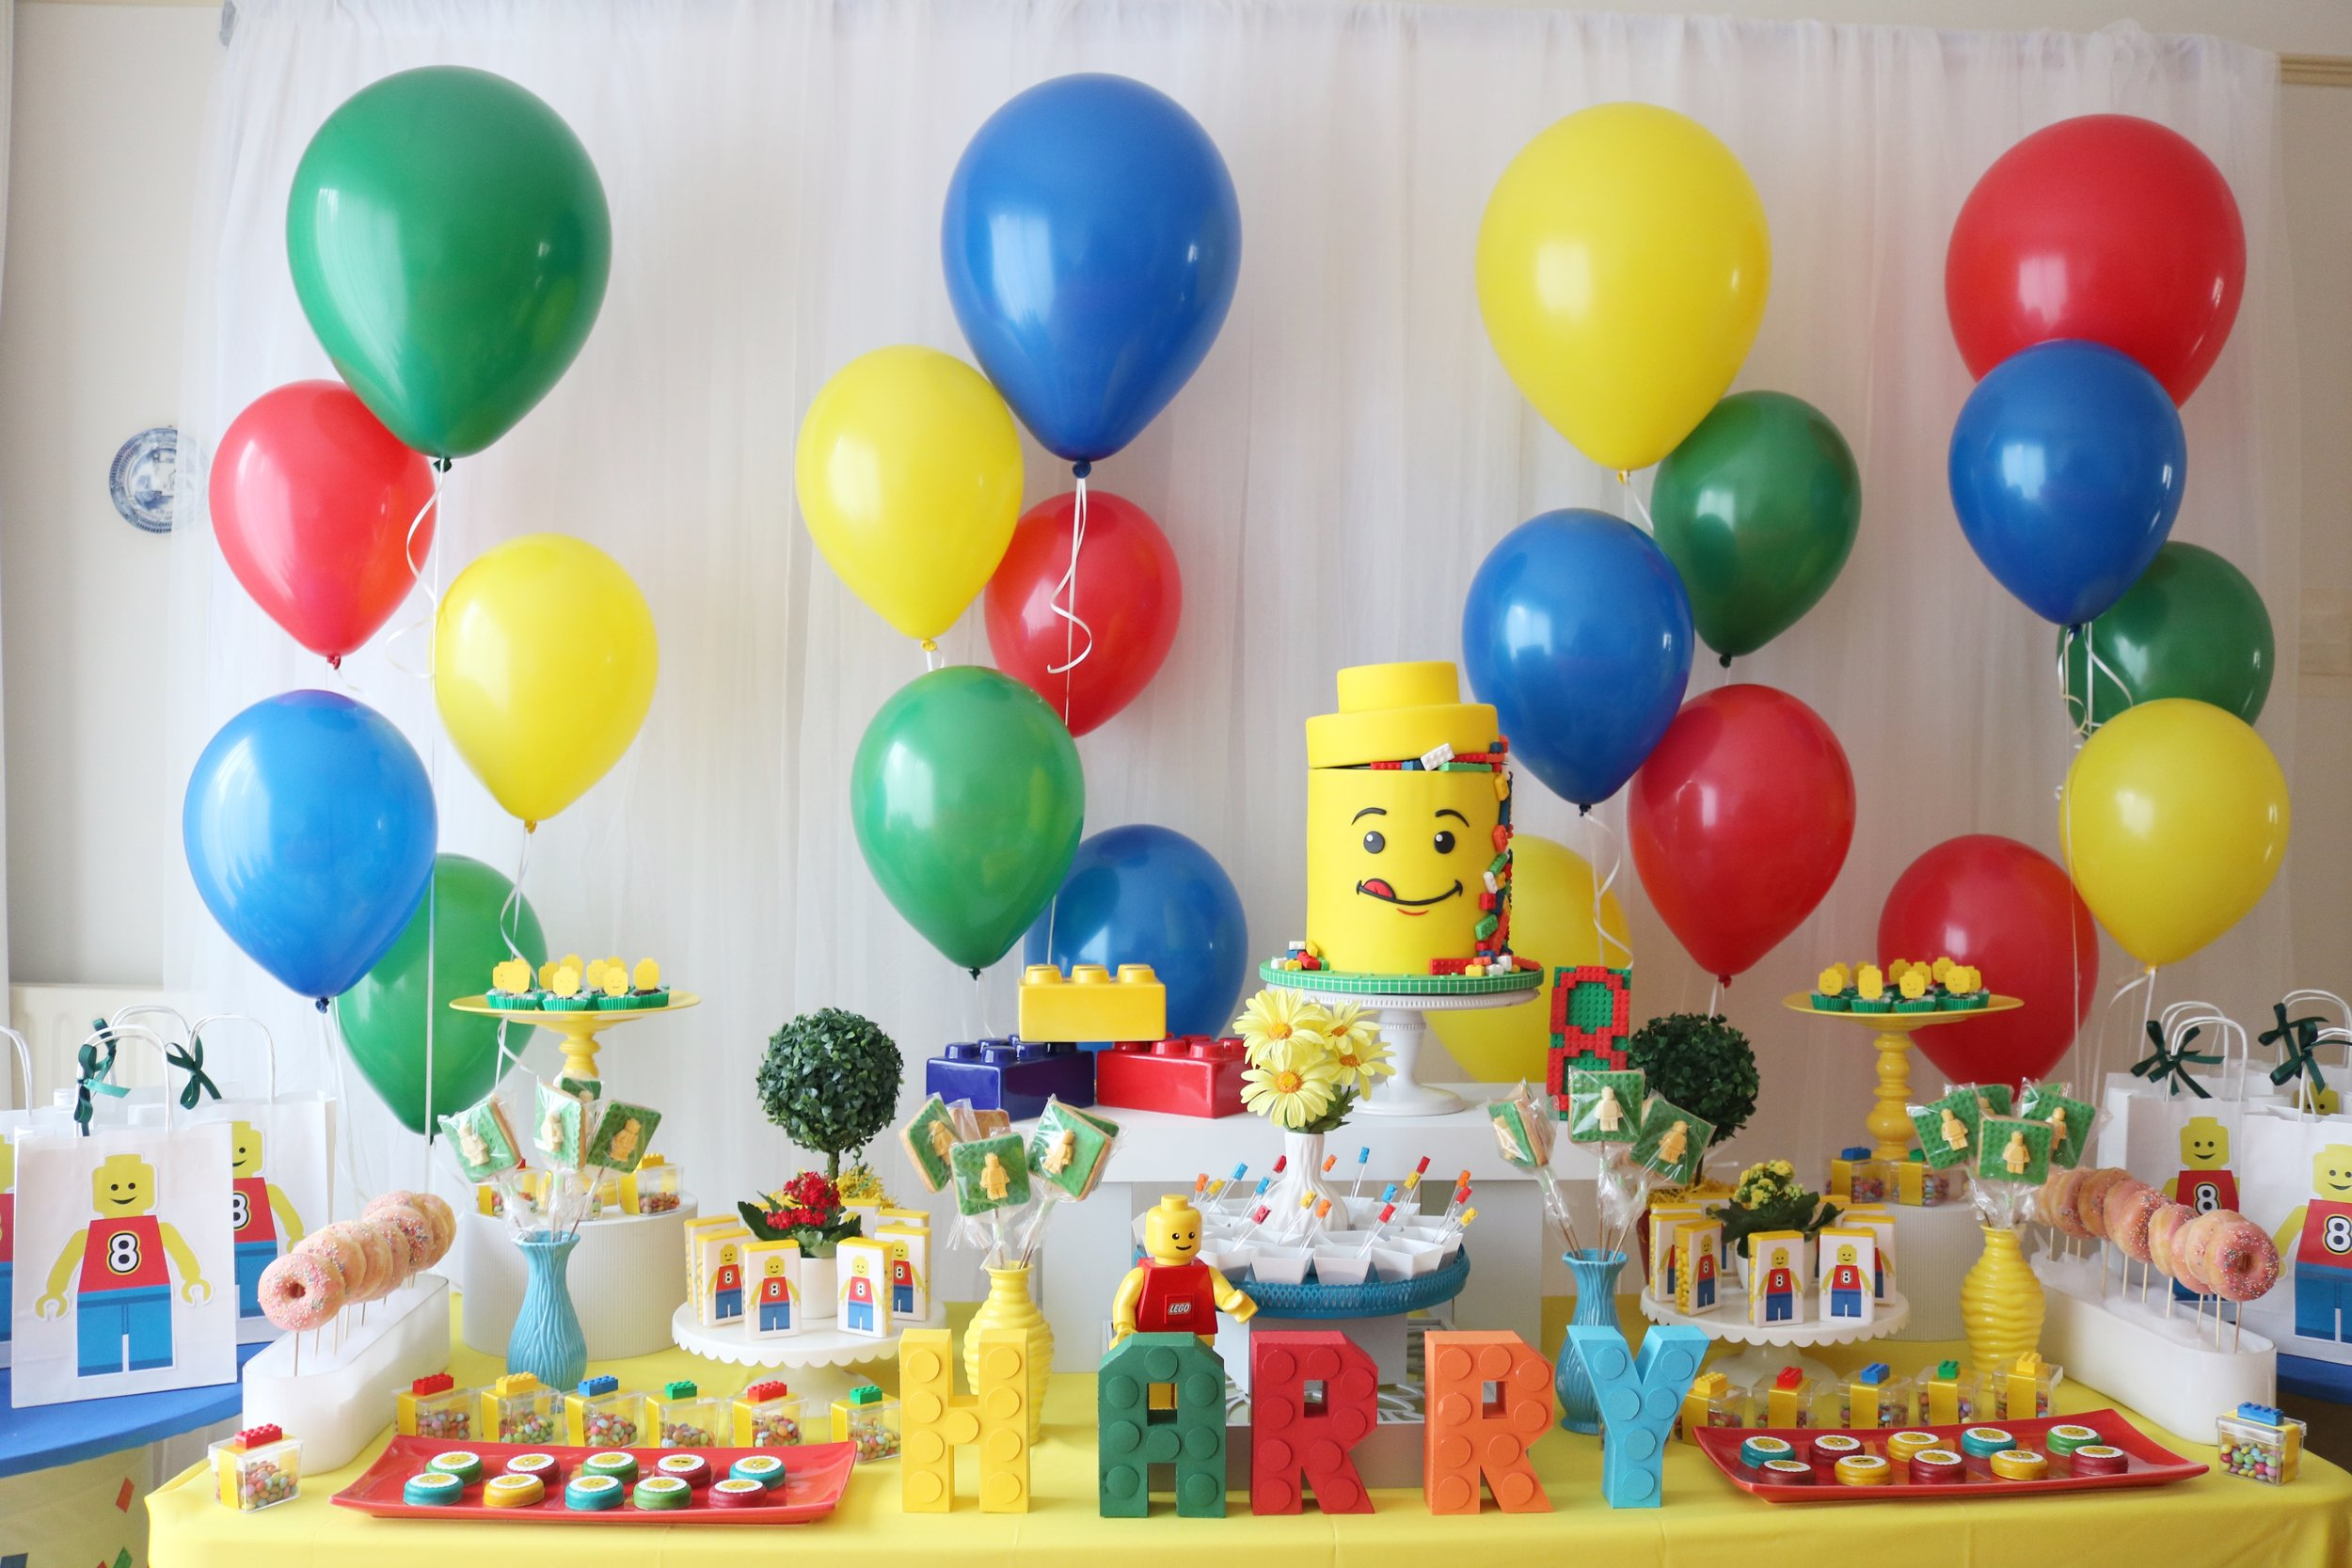 GK Moments - Your full service party planner for kids If you are